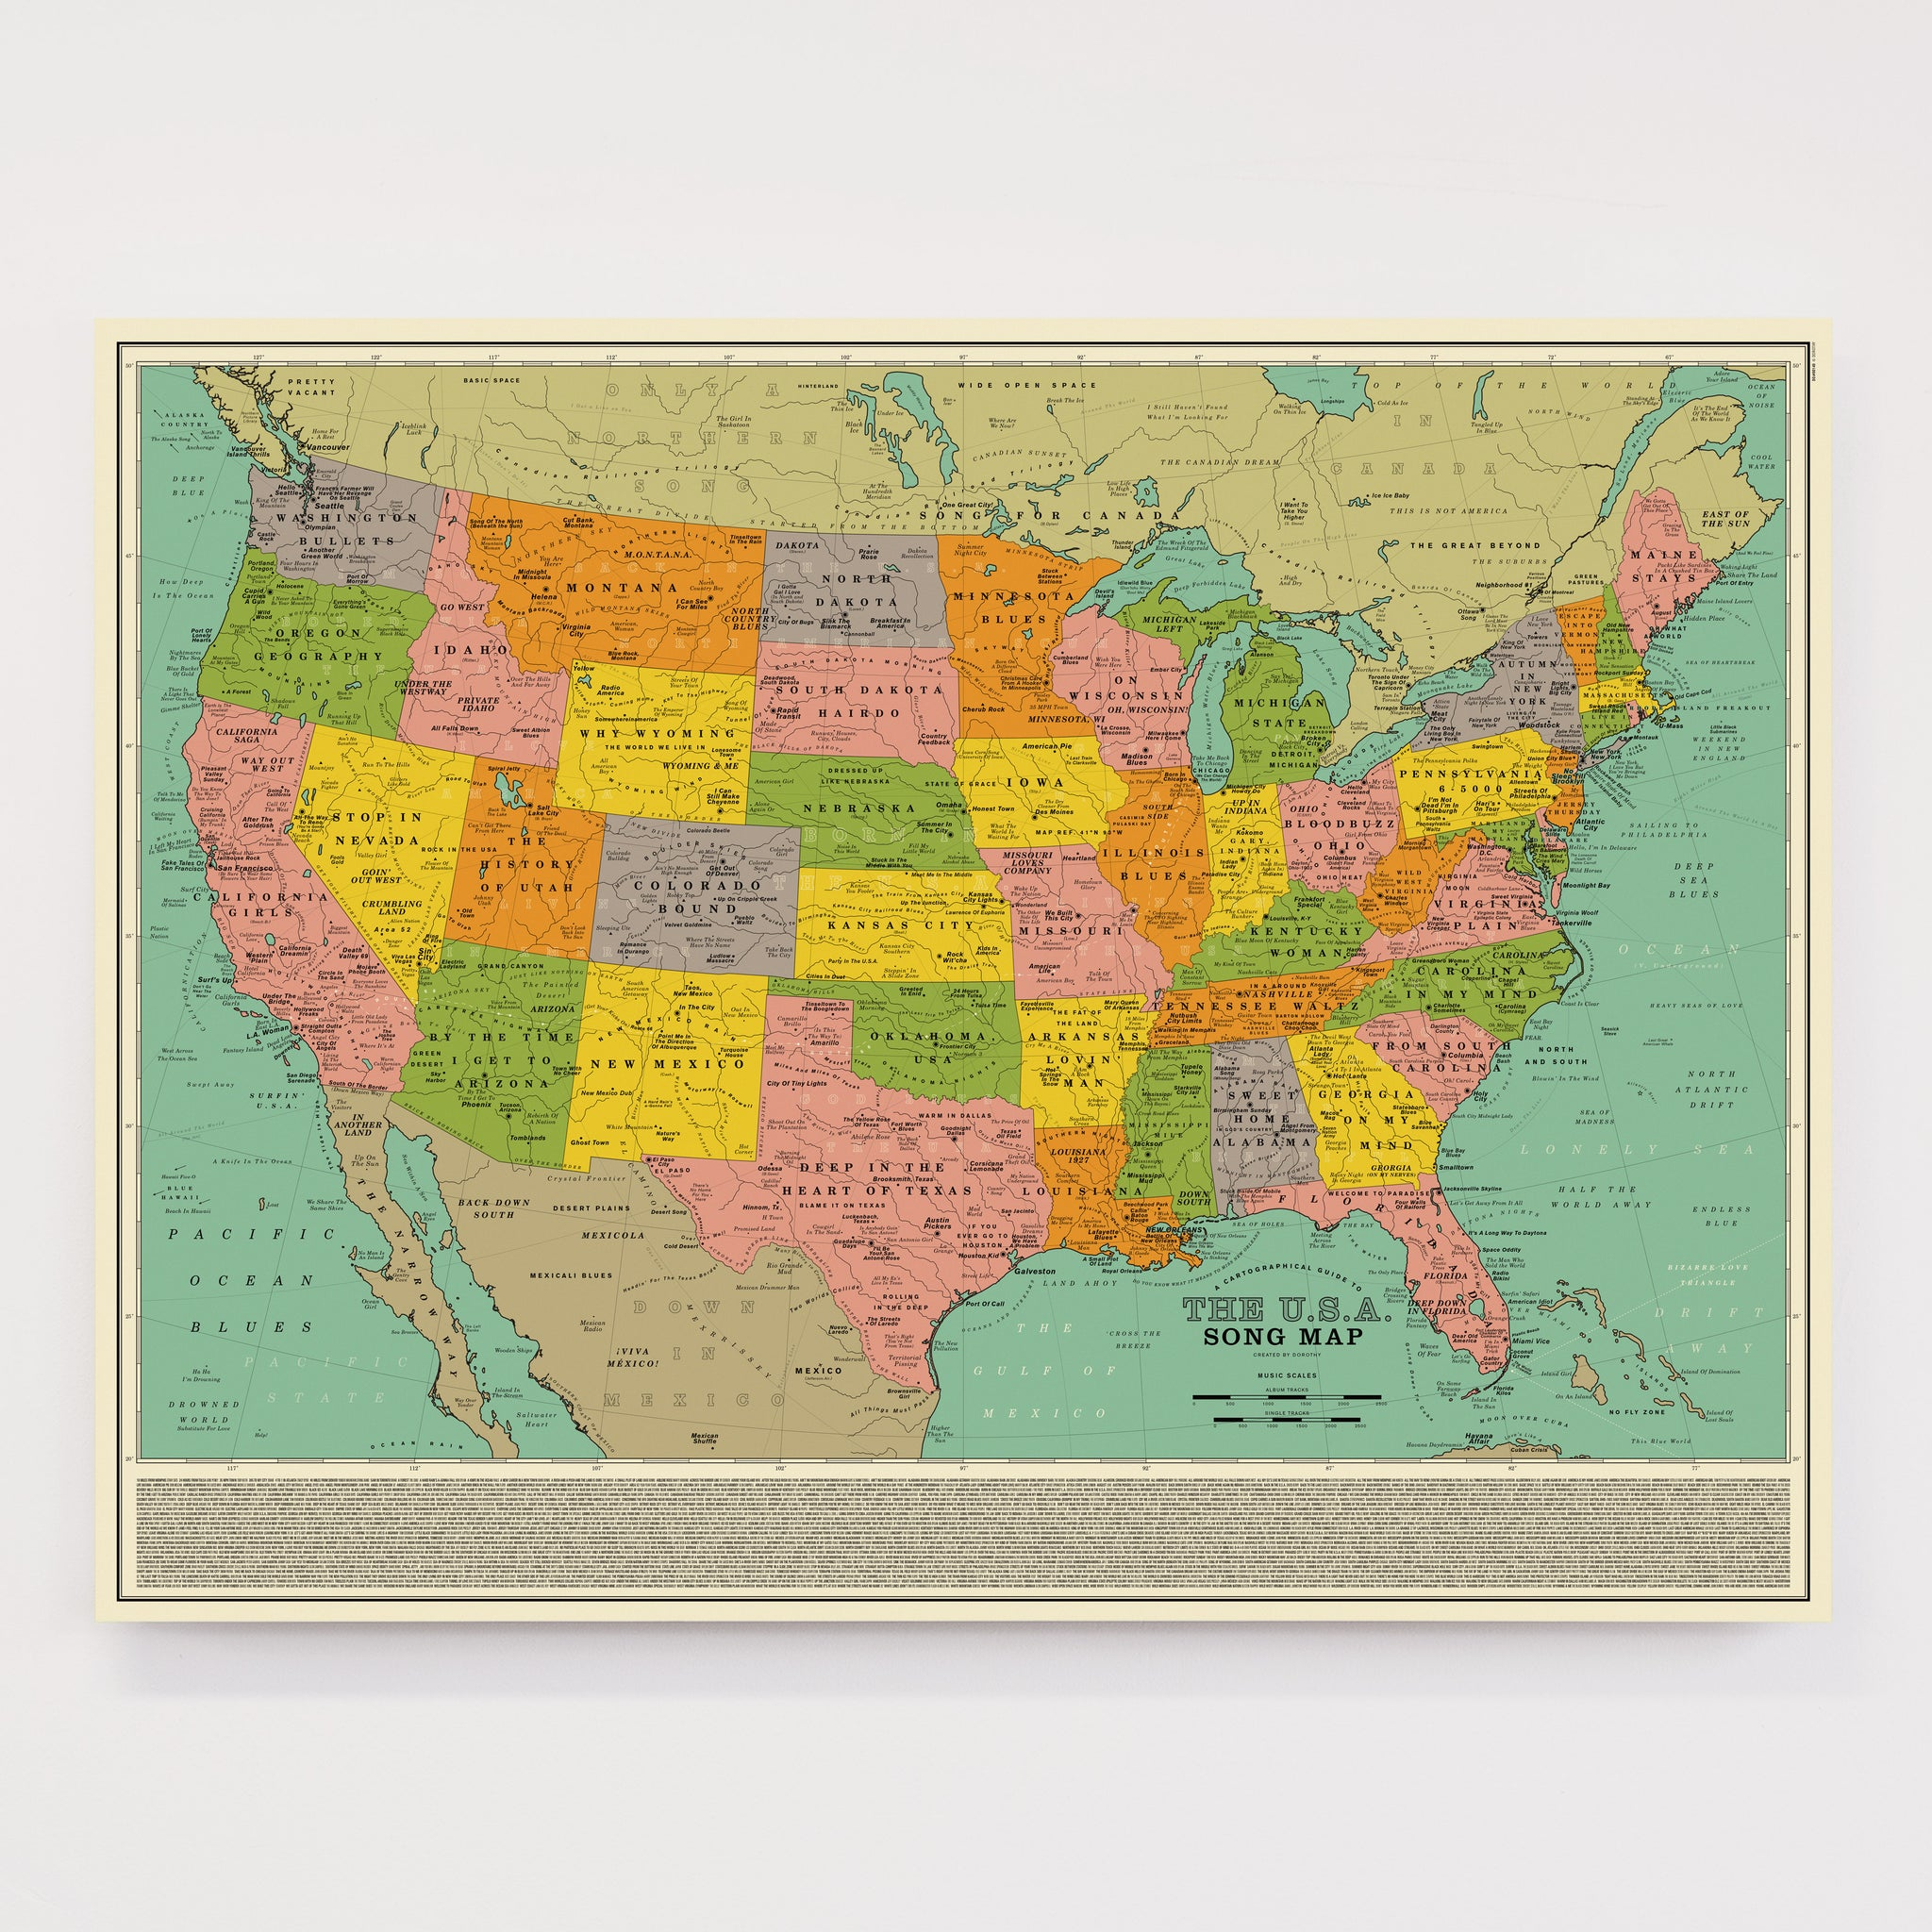 Real Map Of The United States.U S A Song Map Open Edition